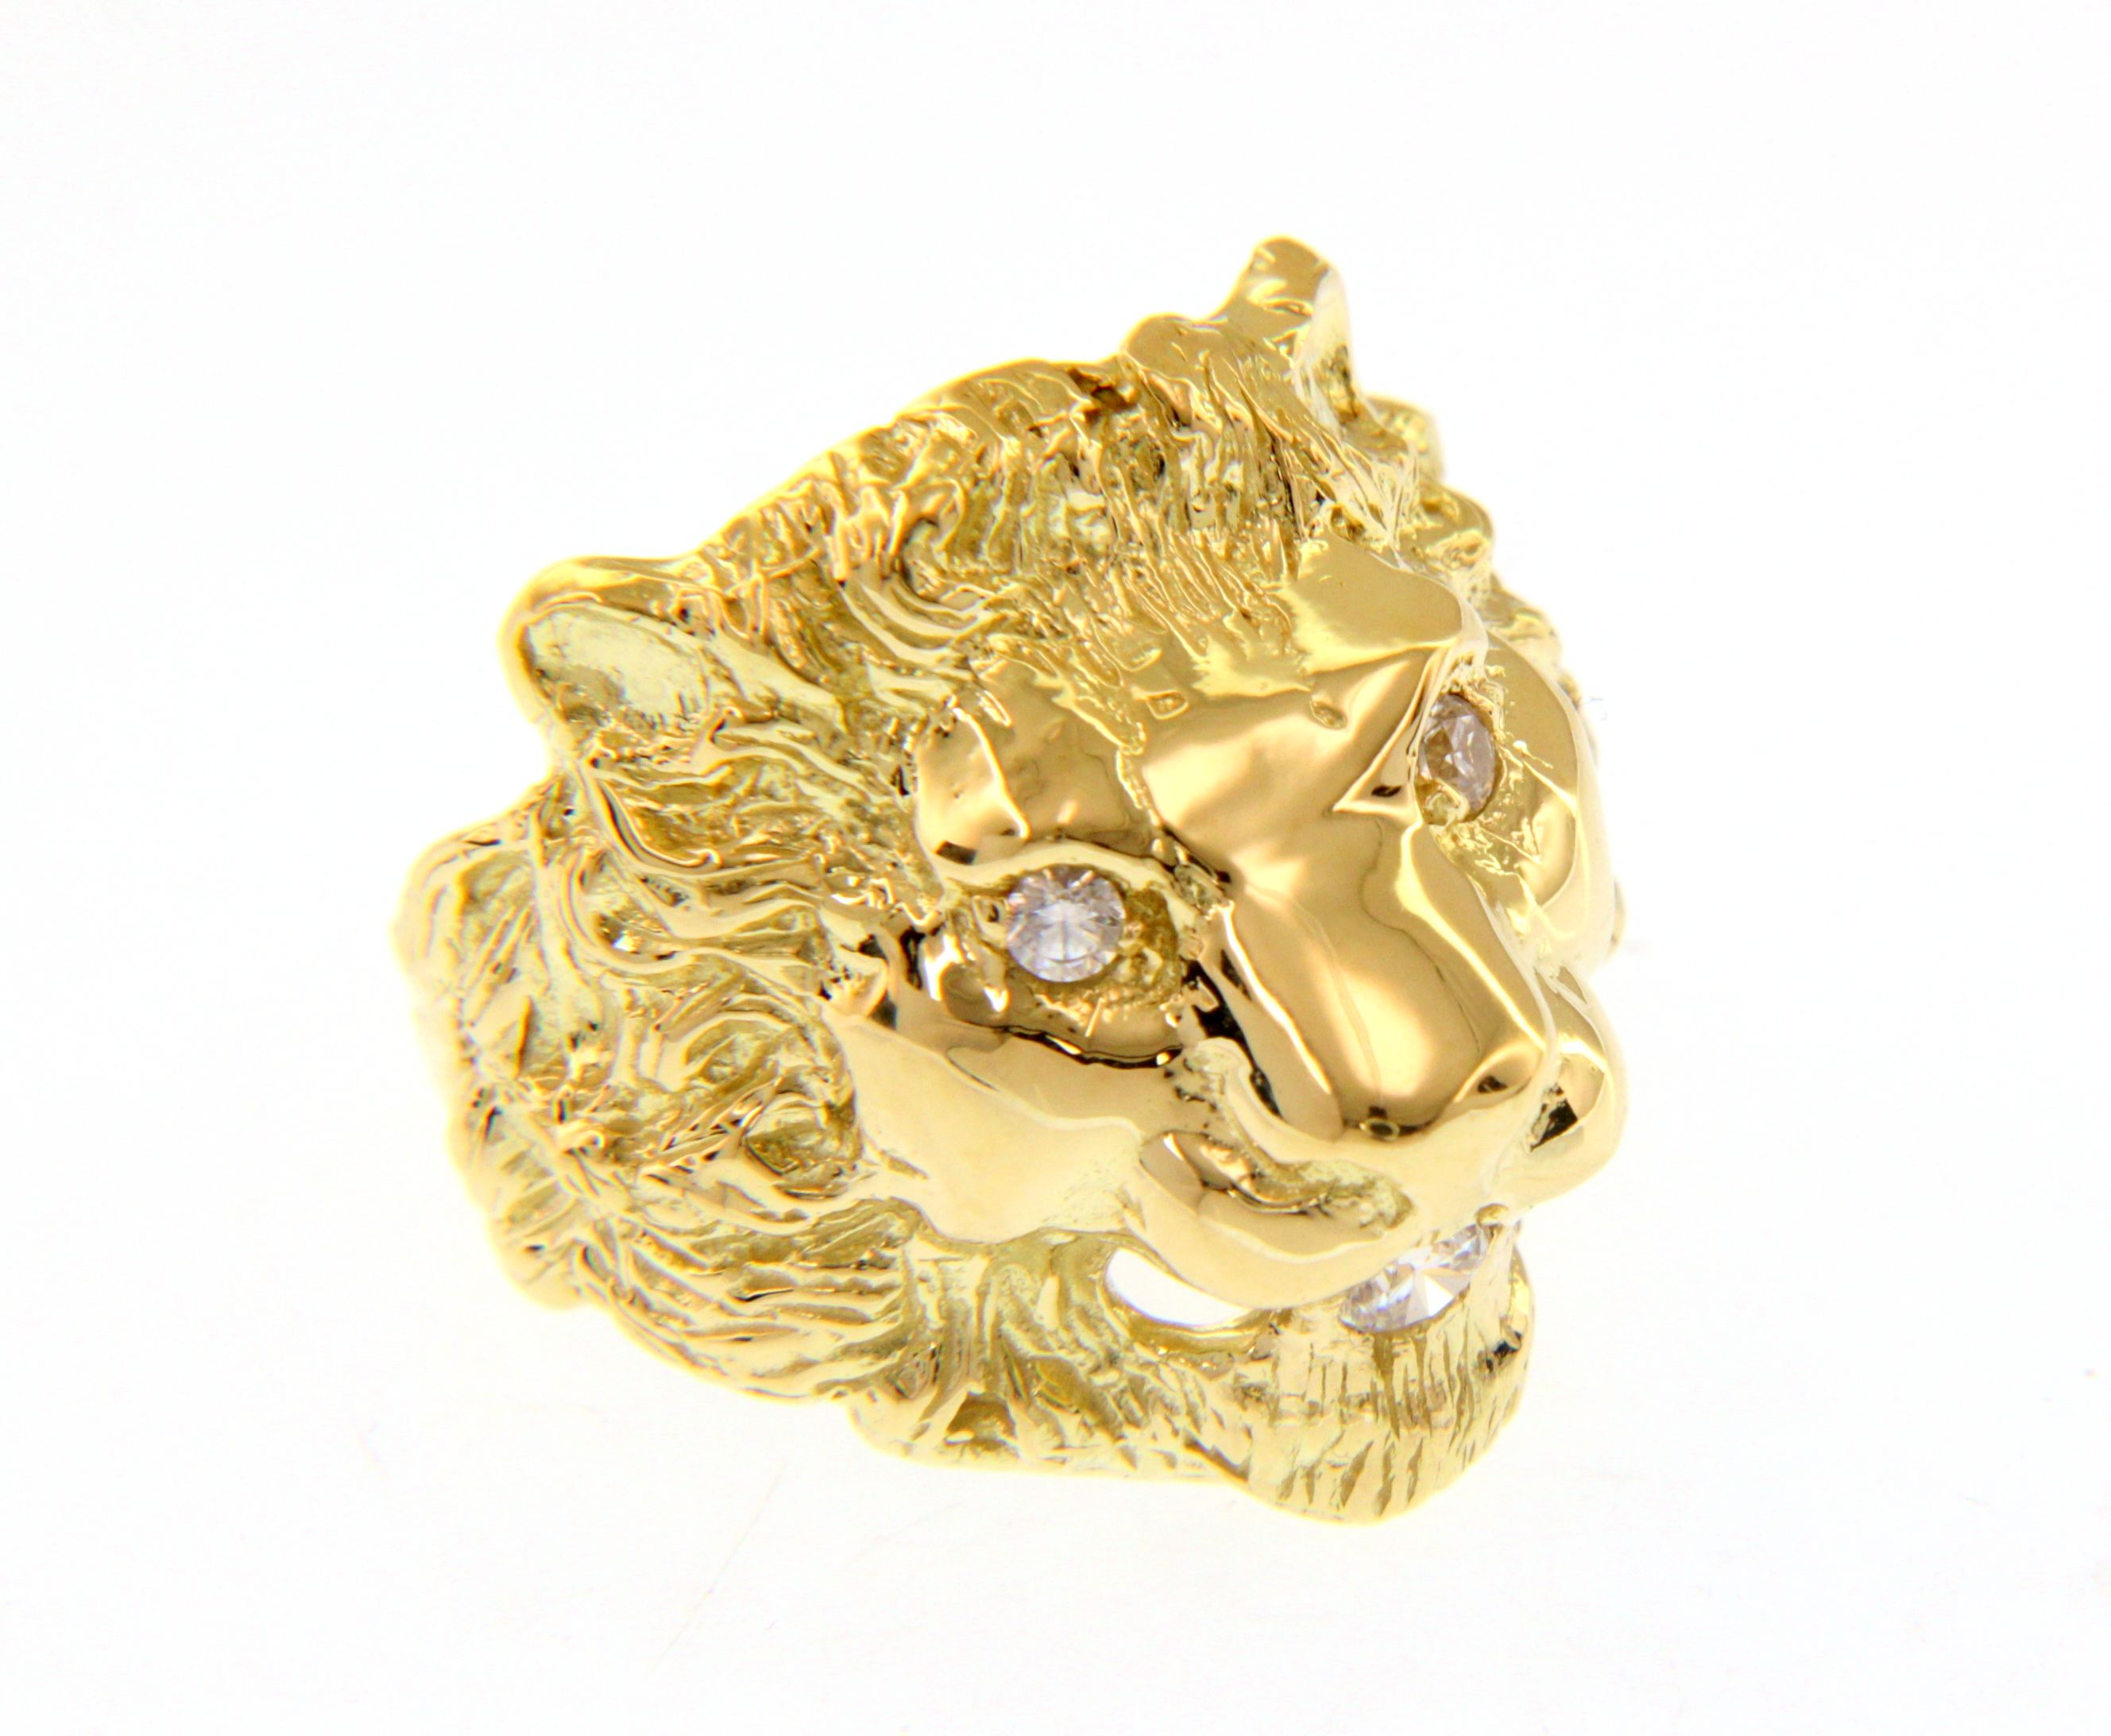 Stylish and bold 18ct Yellow gold ring with lion head